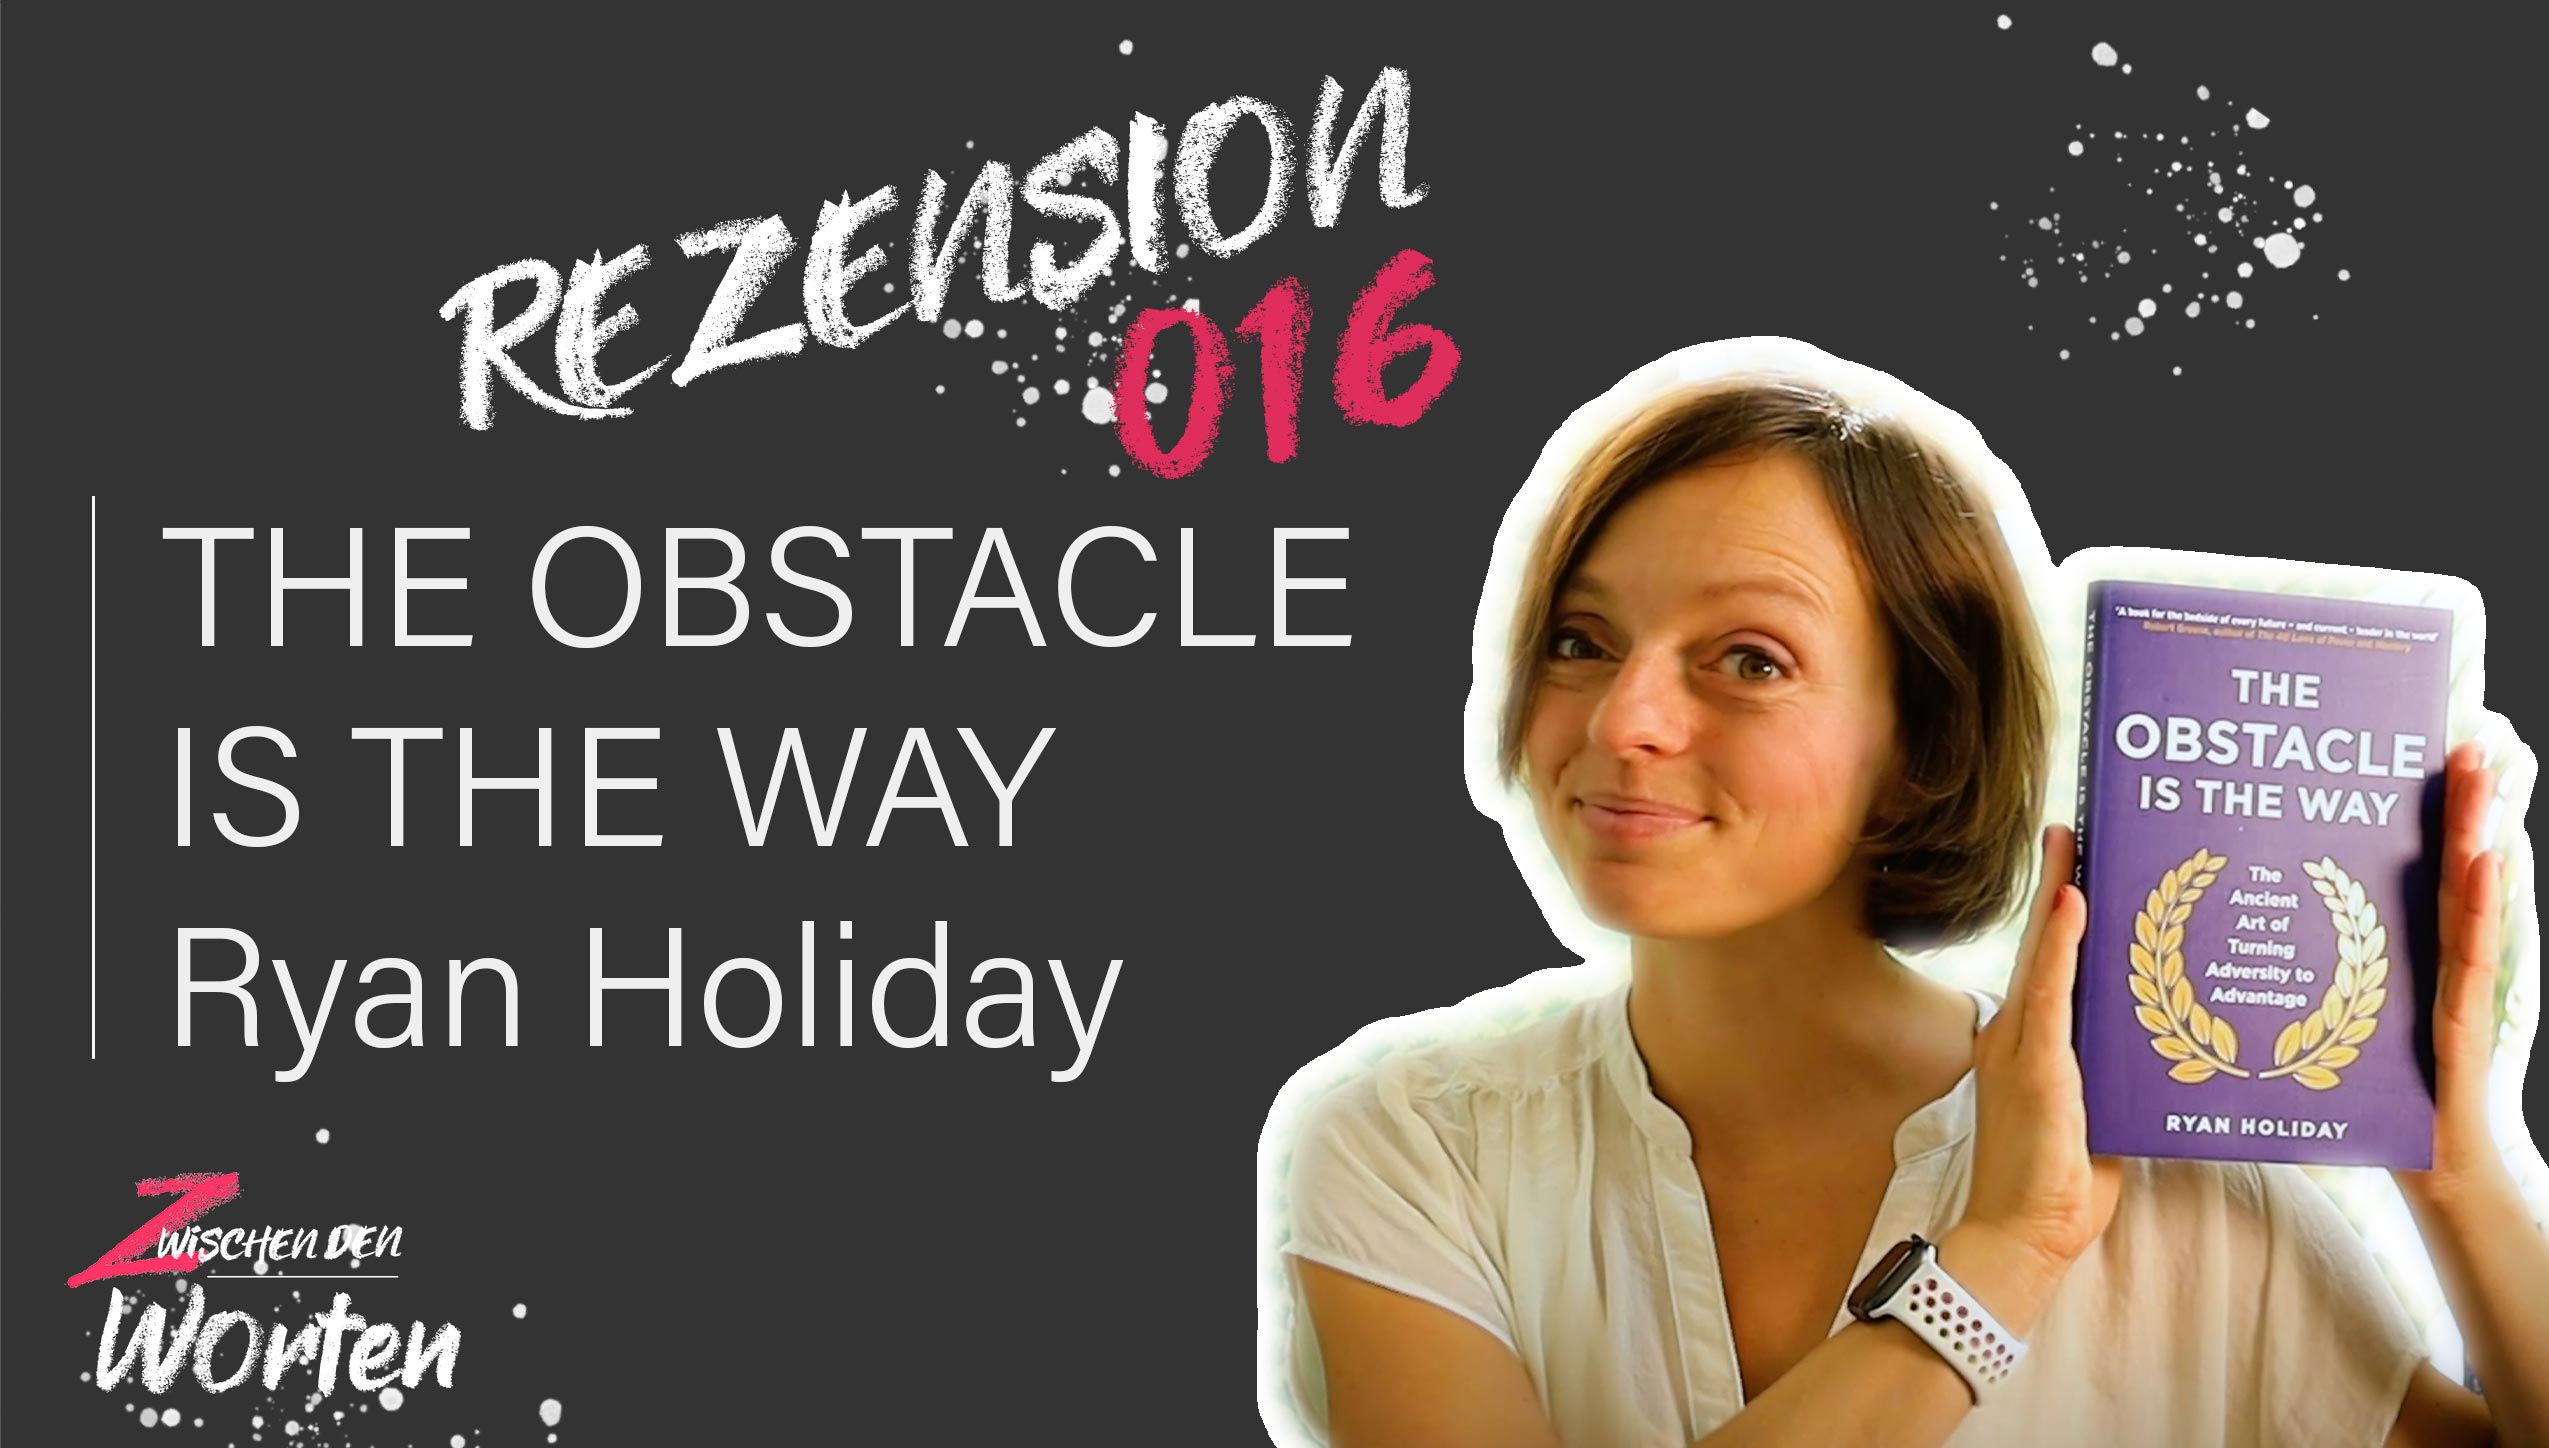 REZI-16_The-obstacle-is-the-way_Ryan-Holiday